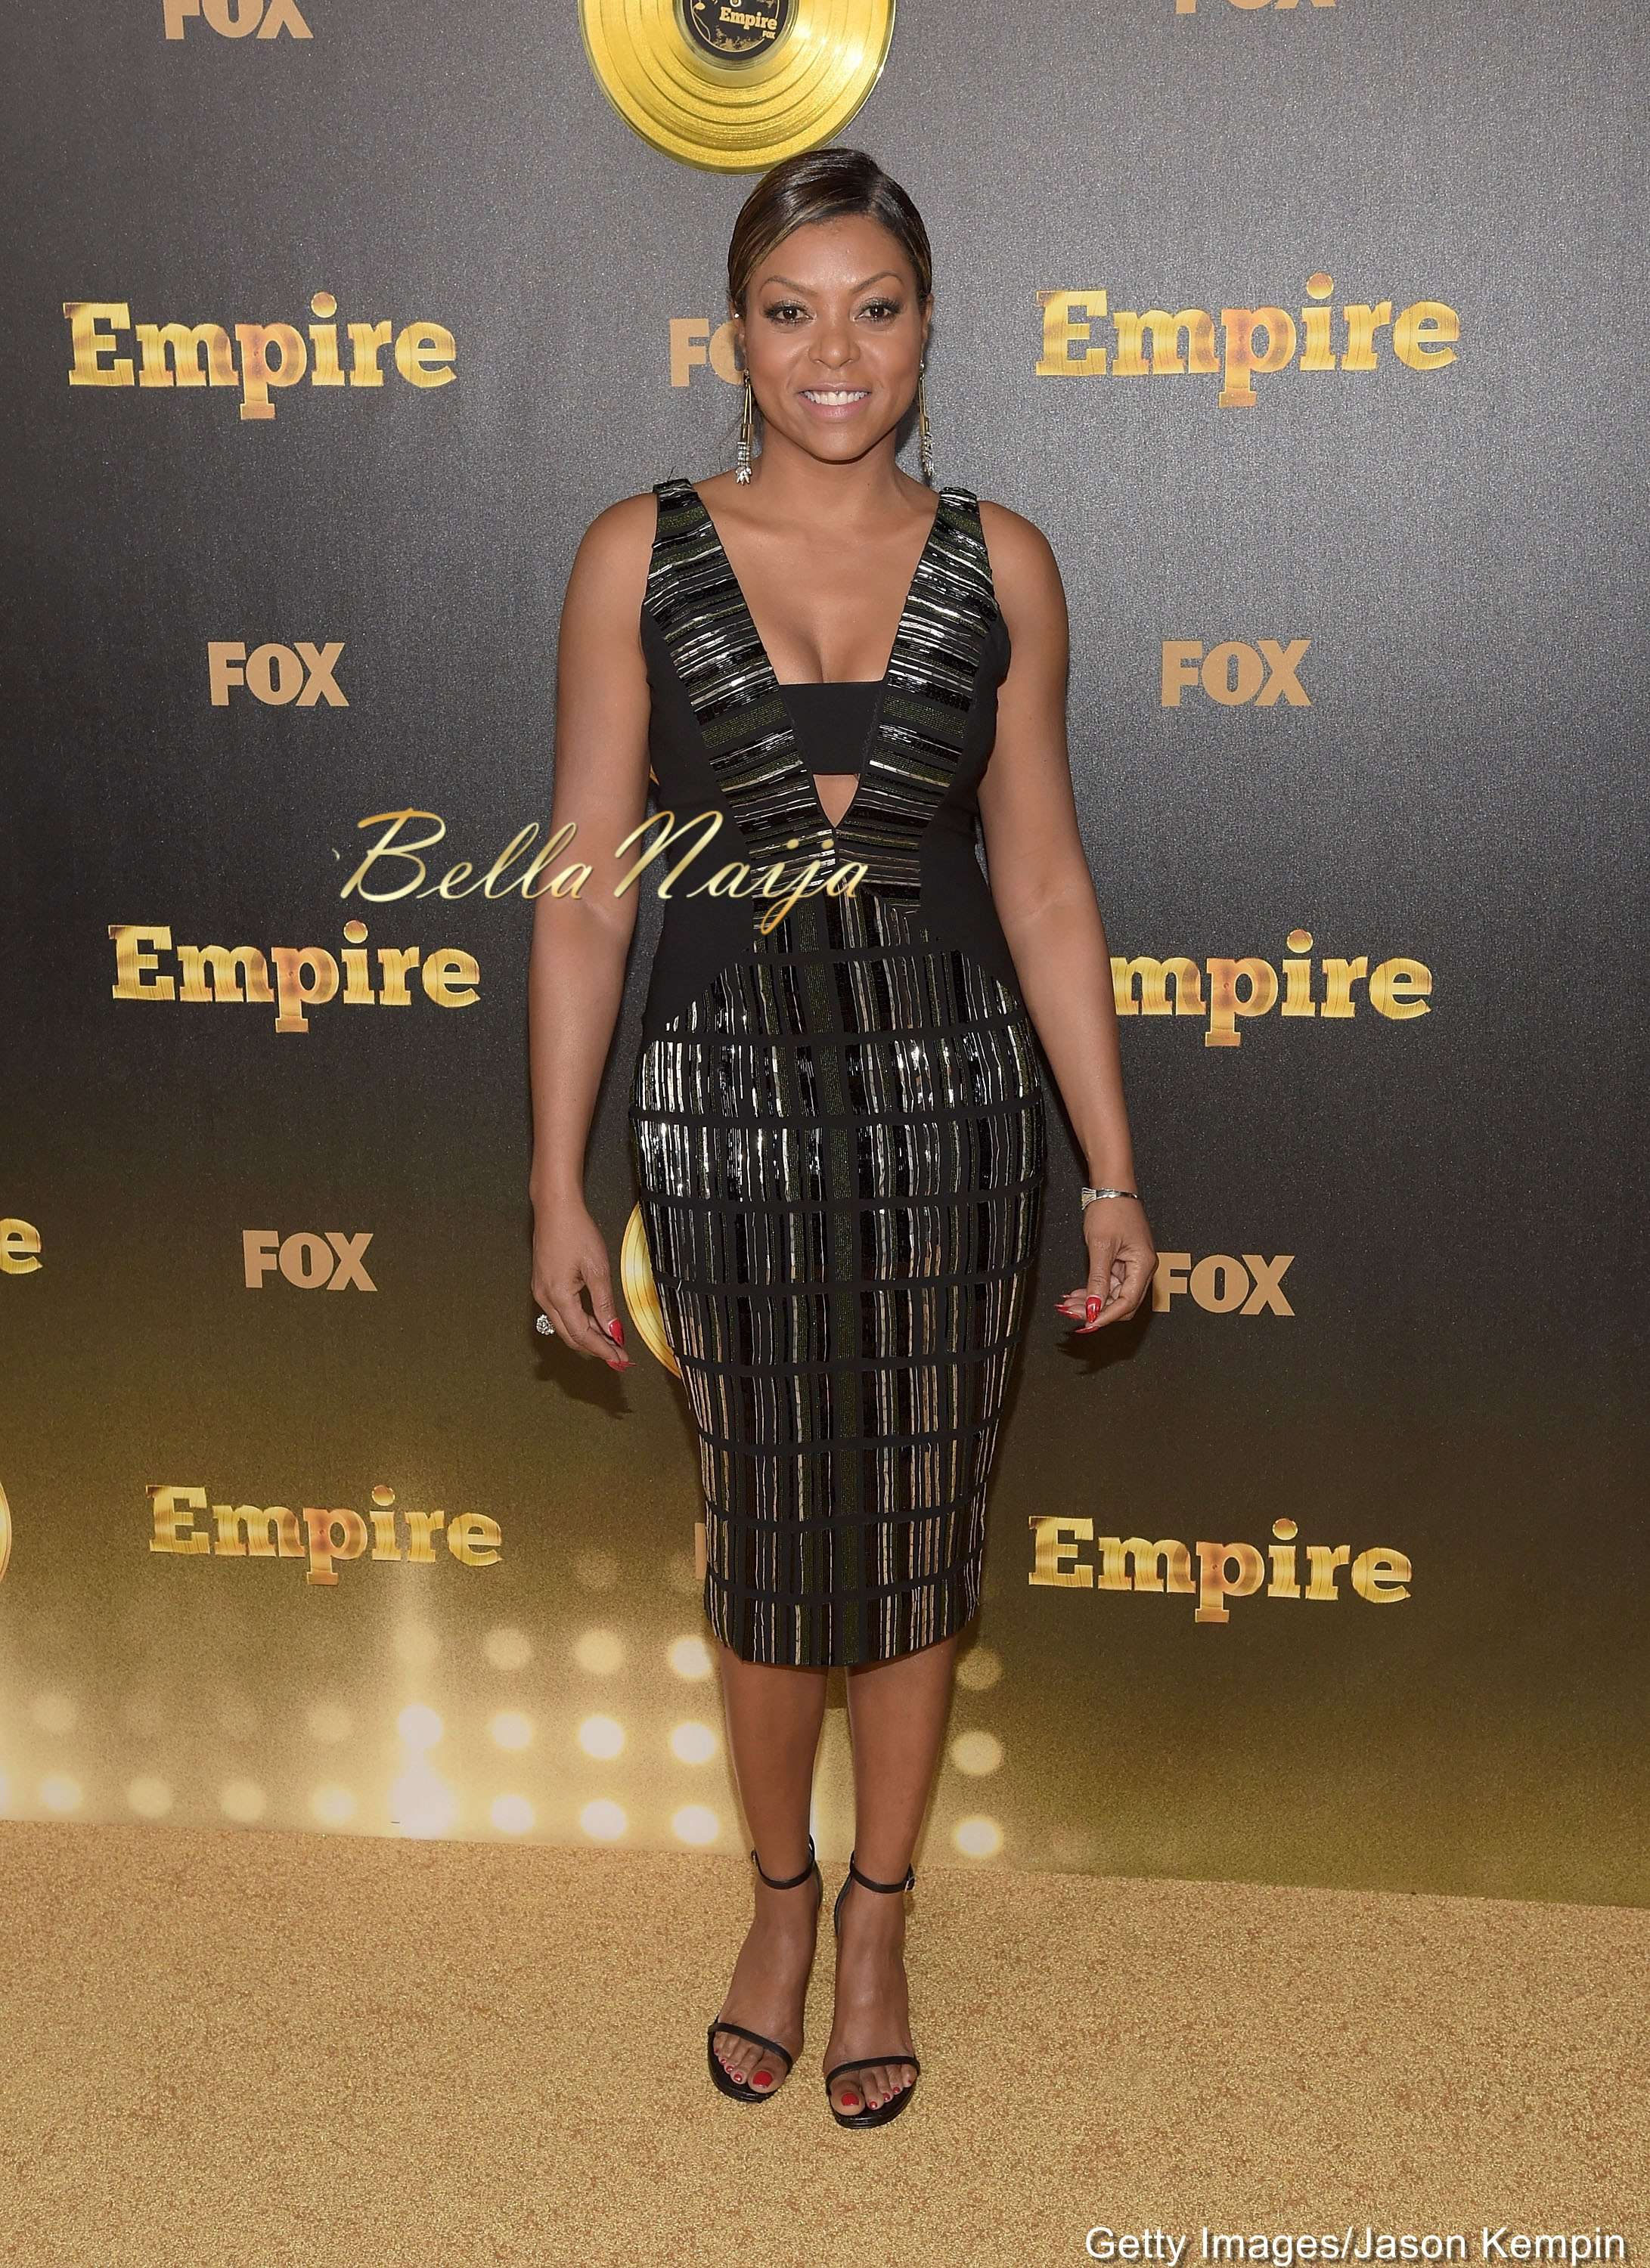 fox-empire-series-premiere-red-carpet-january-2015-bellanaija002.jpg